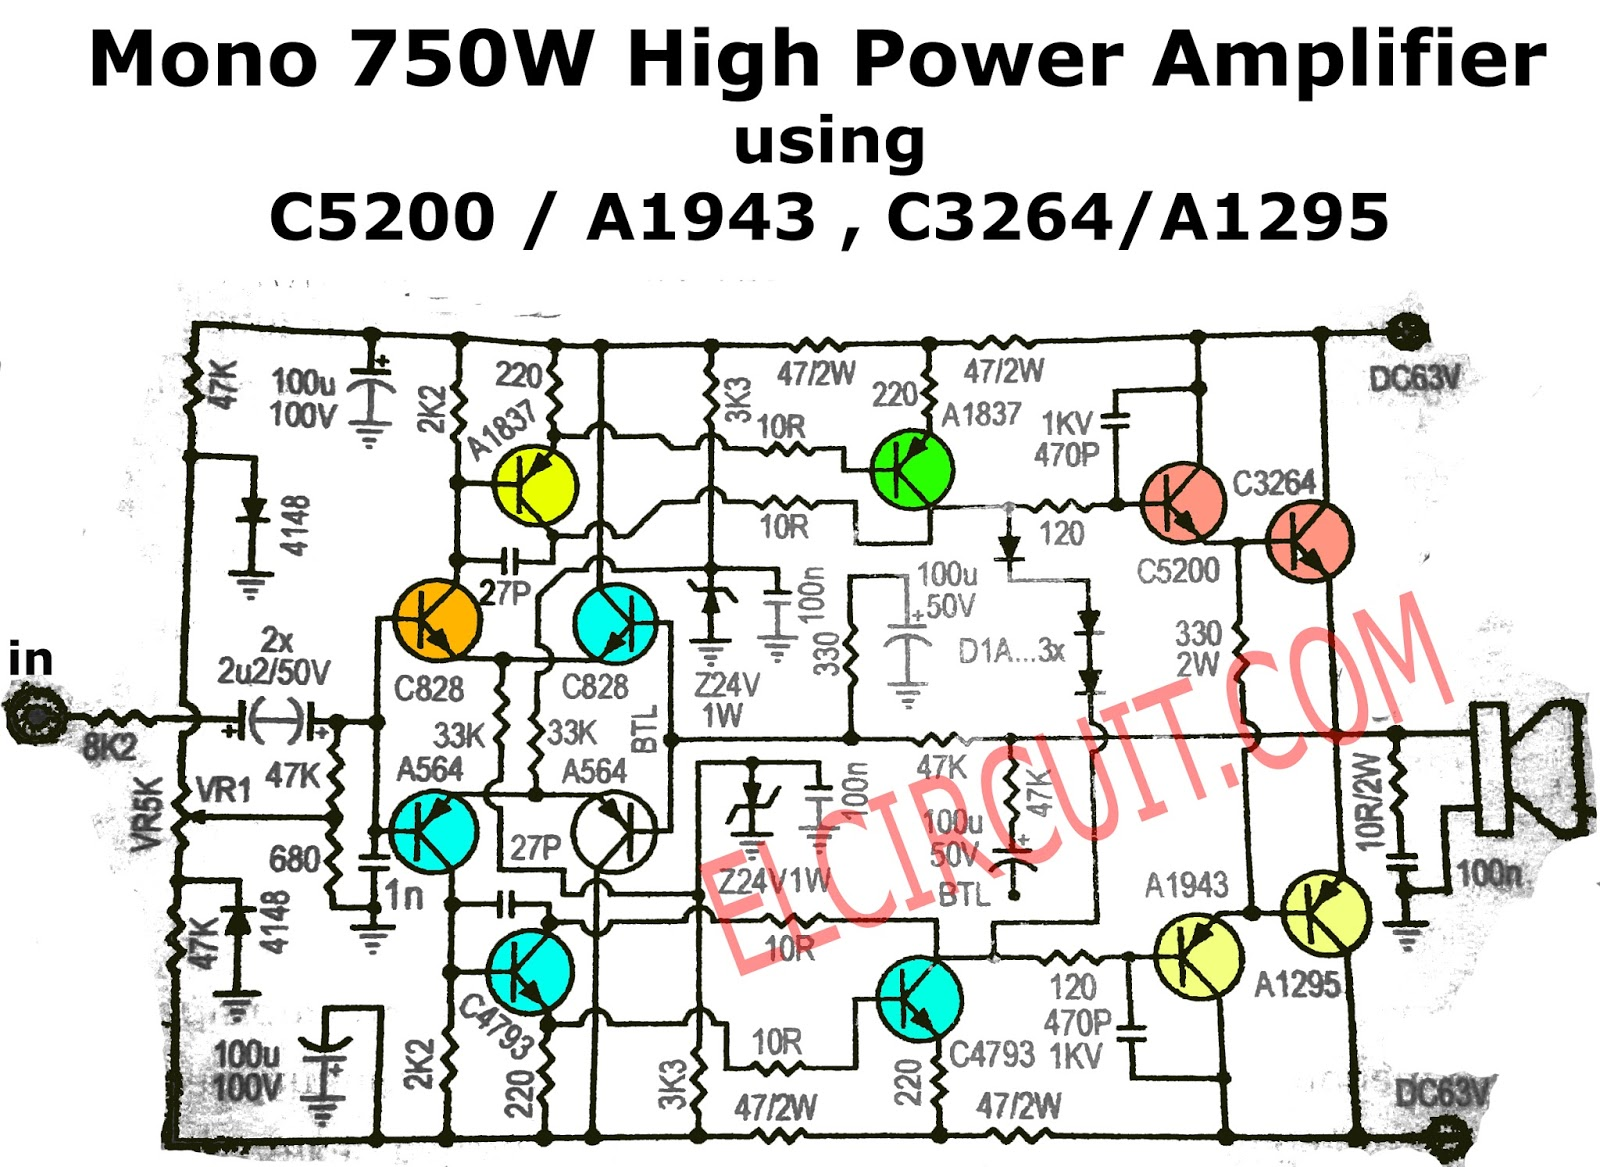 hight resolution of 750w mono power amplifier schematic and pcb electronic circuit